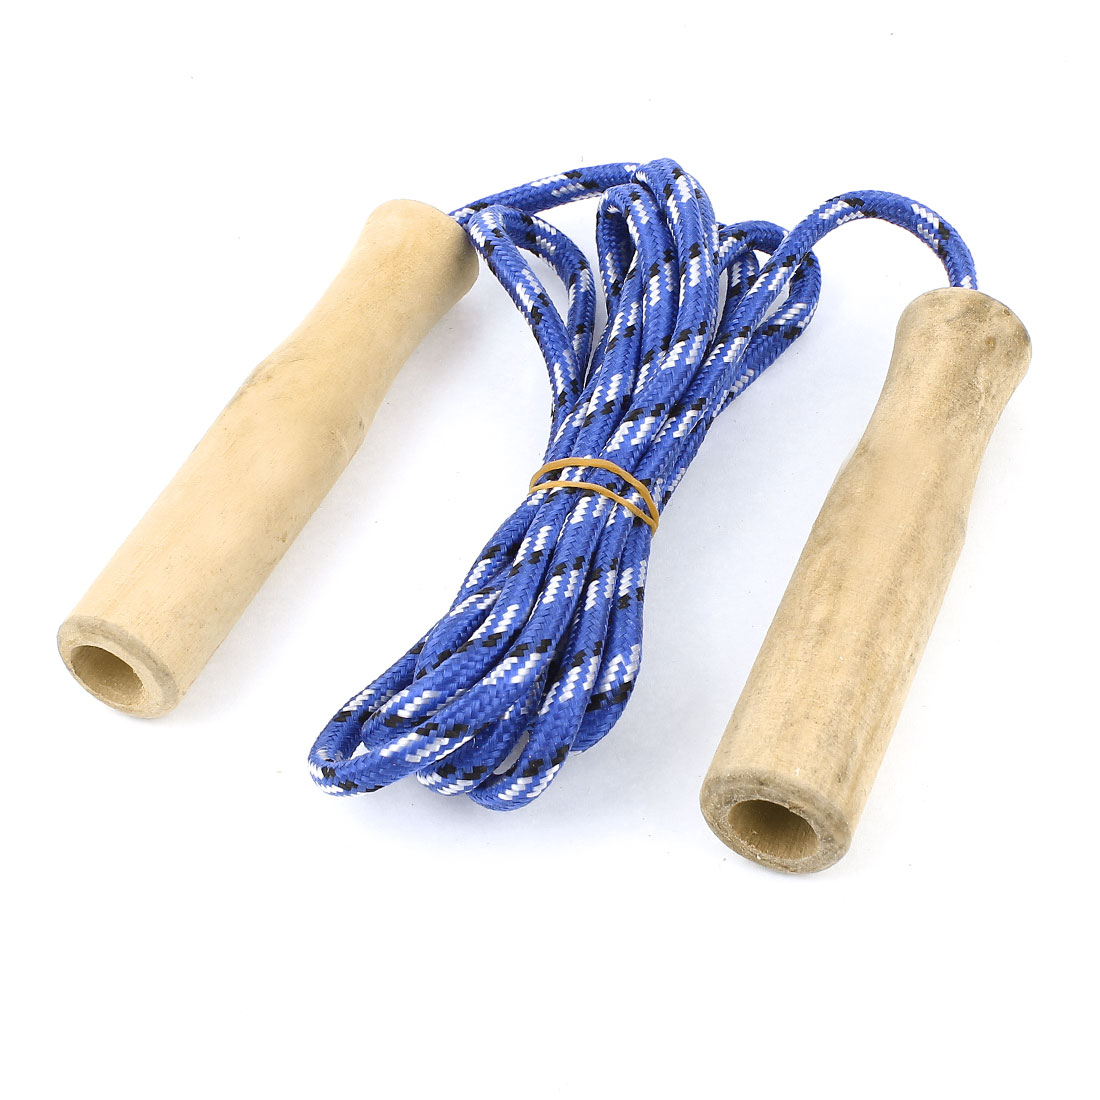 Wooden Grip Sports Exercise Jump Skip Skipping Rope Blue 2 Meter Long